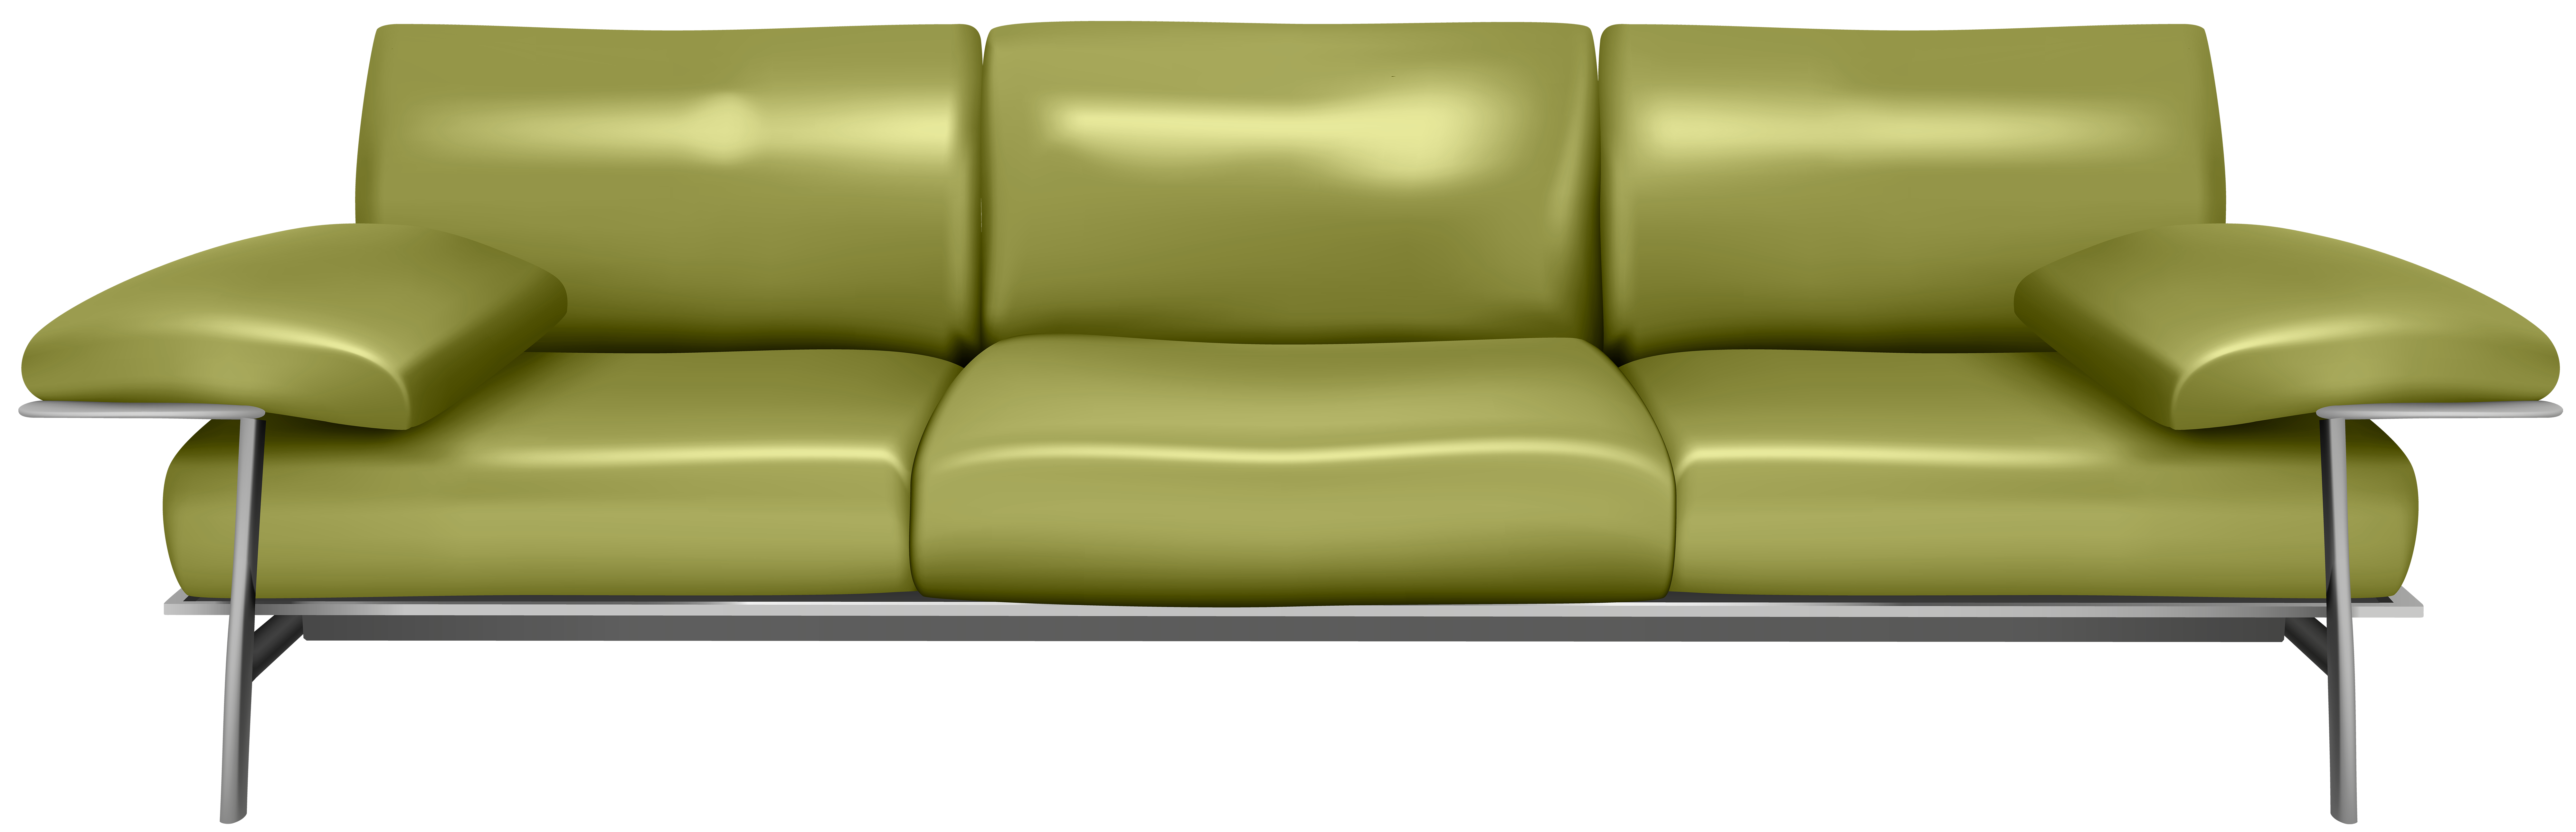 Furniture clipart couch. Sofa transparent png clip